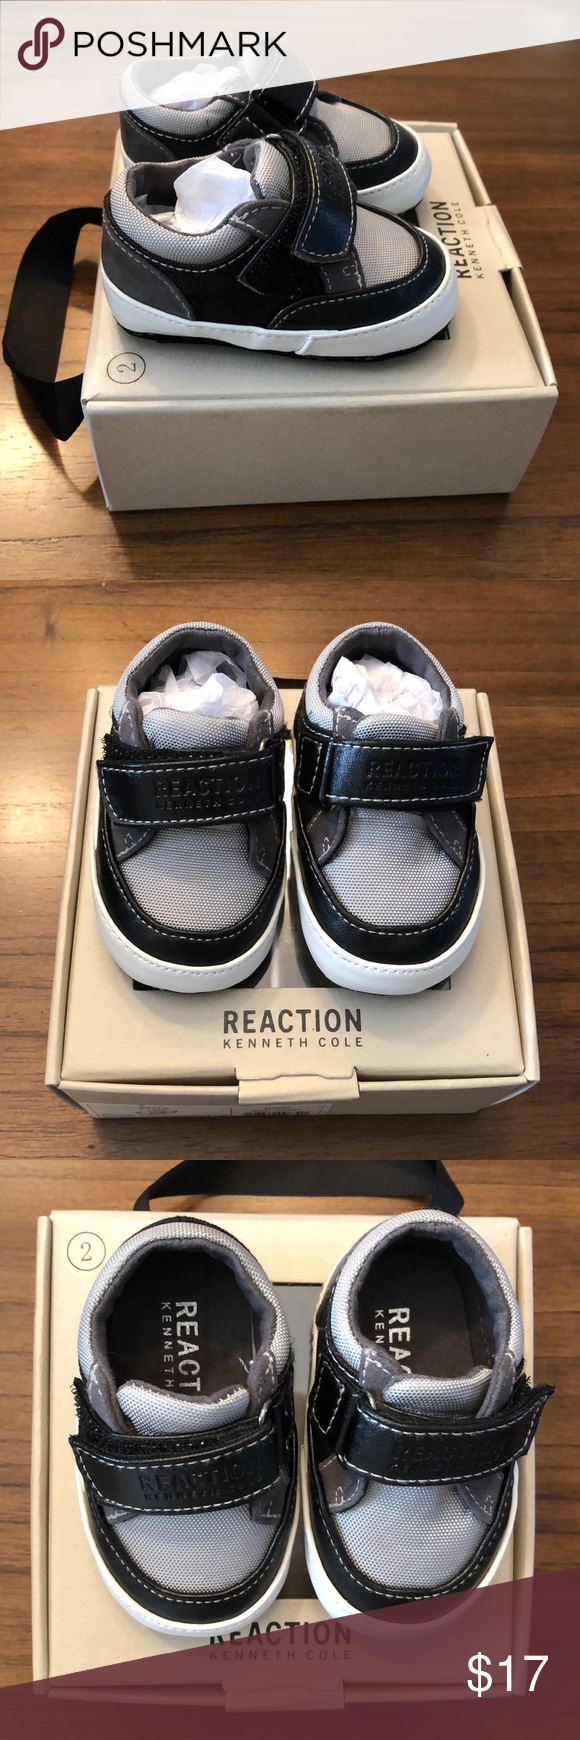 Kenneth Cole Infant shoes - size 2